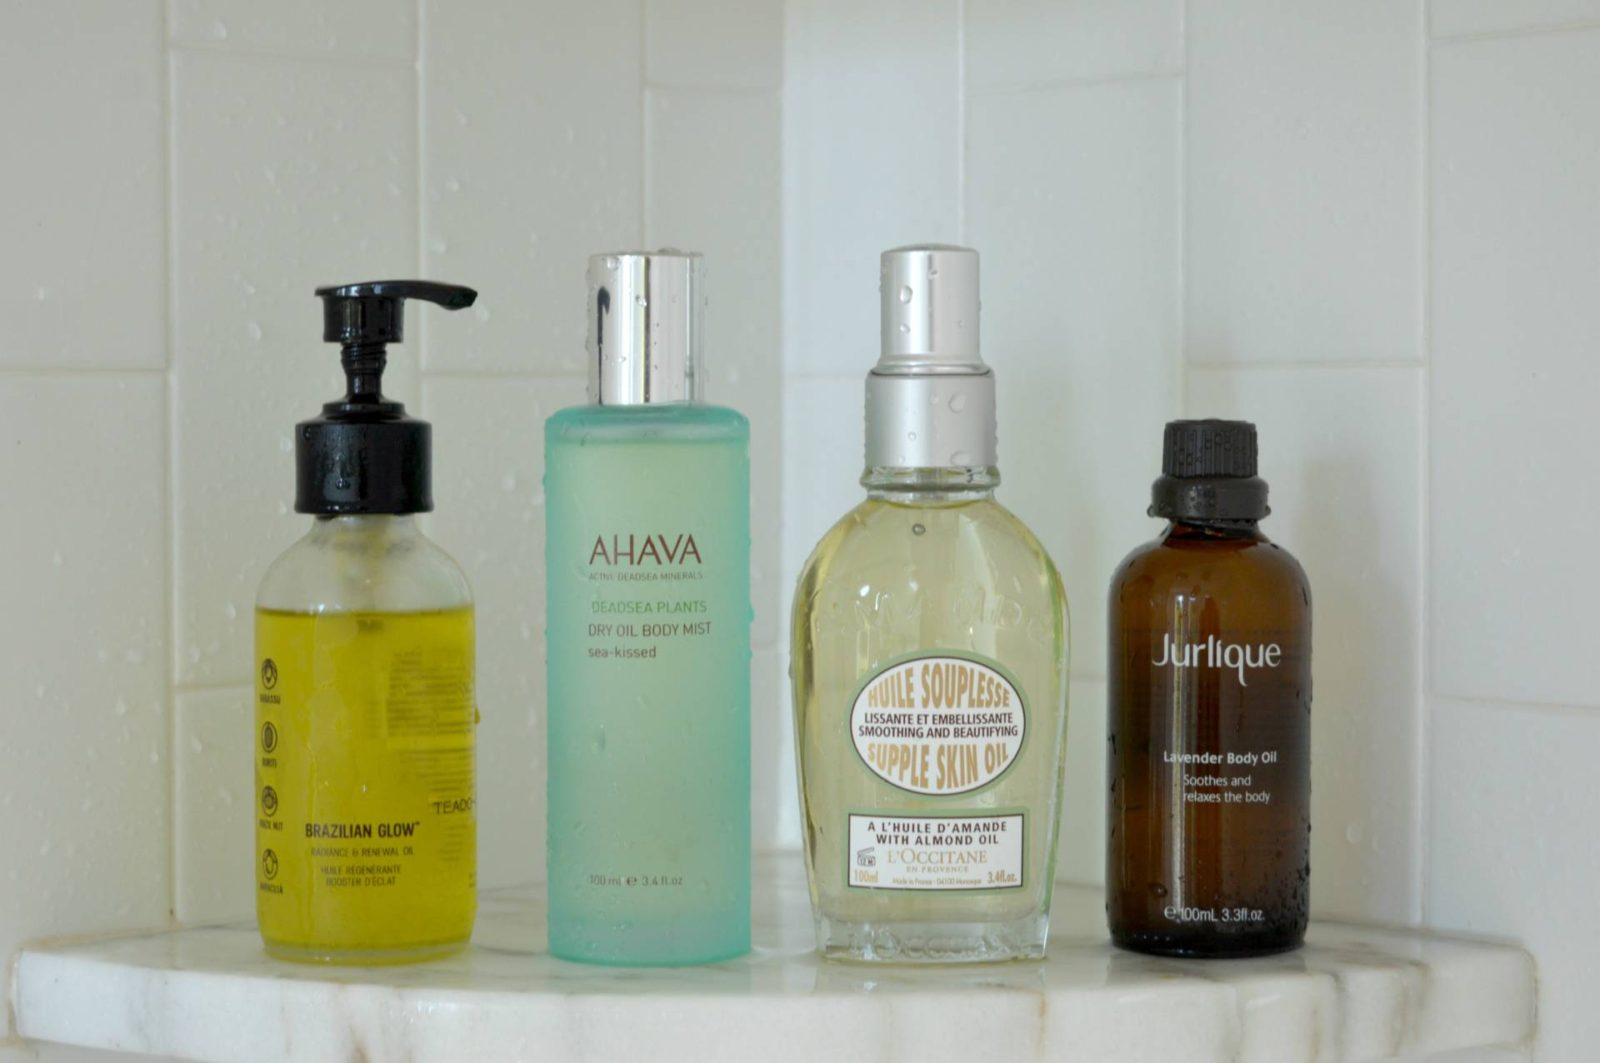 #currentmood: Favorite Body Oils from TEADORA, AHAVA, Jurlique & L'OCCITANE